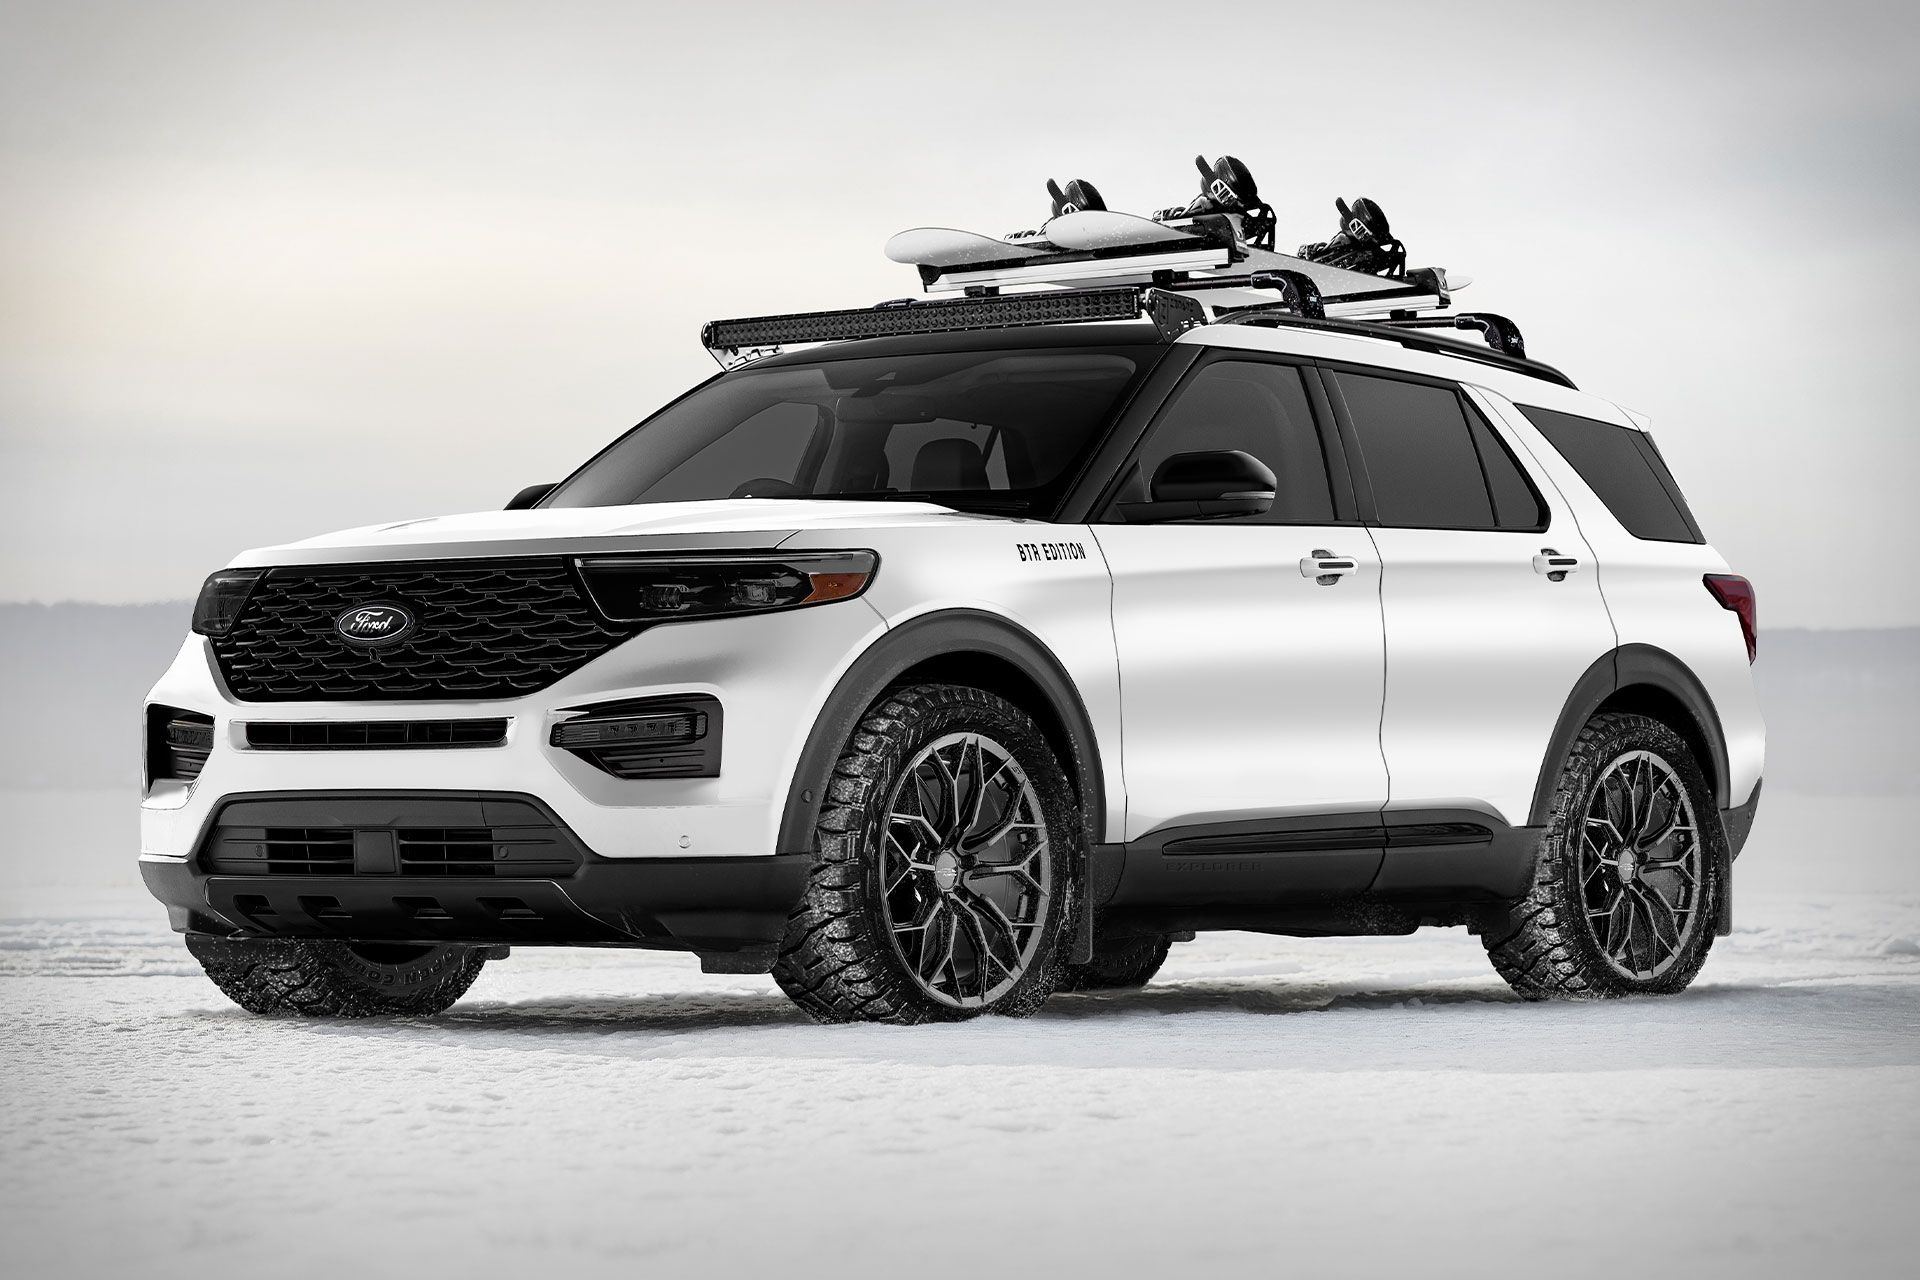 2020 Ford X Blood Type Racing Explorer Suv 2020 Ford Explorer Ford Explorer Limited Ford Explorer